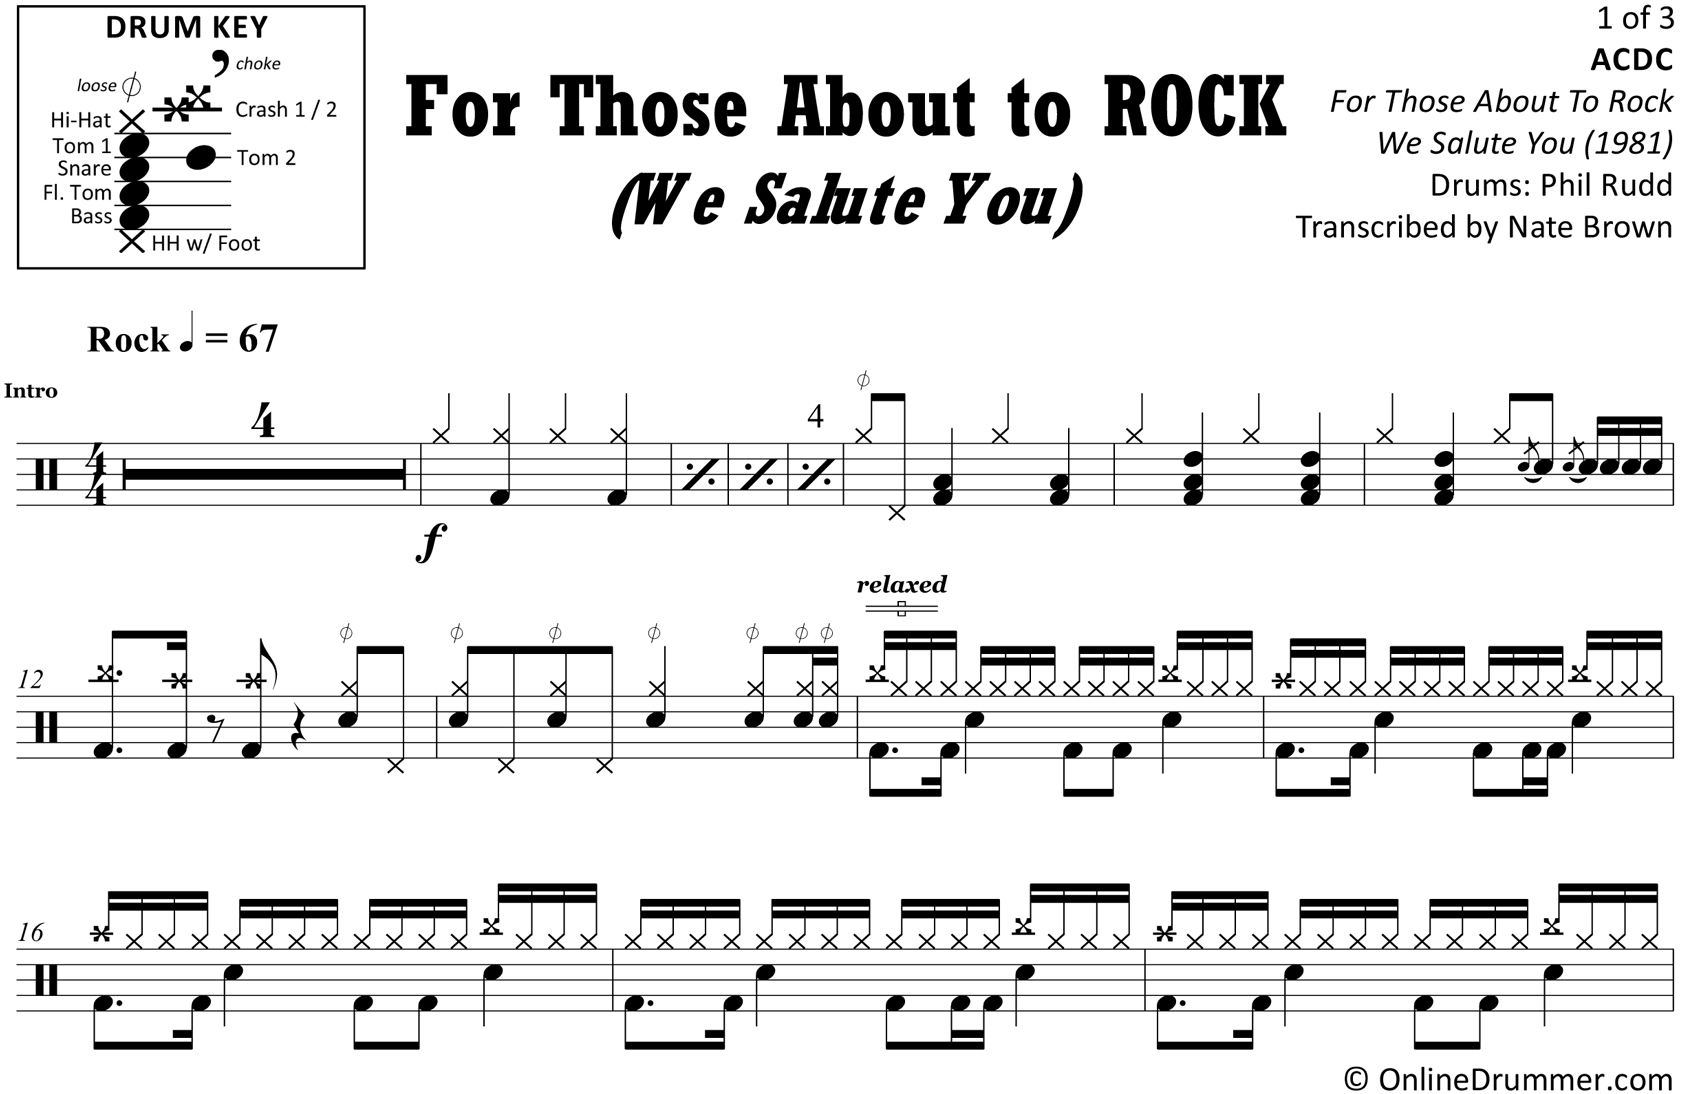 For Those About To Rock (We Salute You) - ACDC - Drum Sheet Music